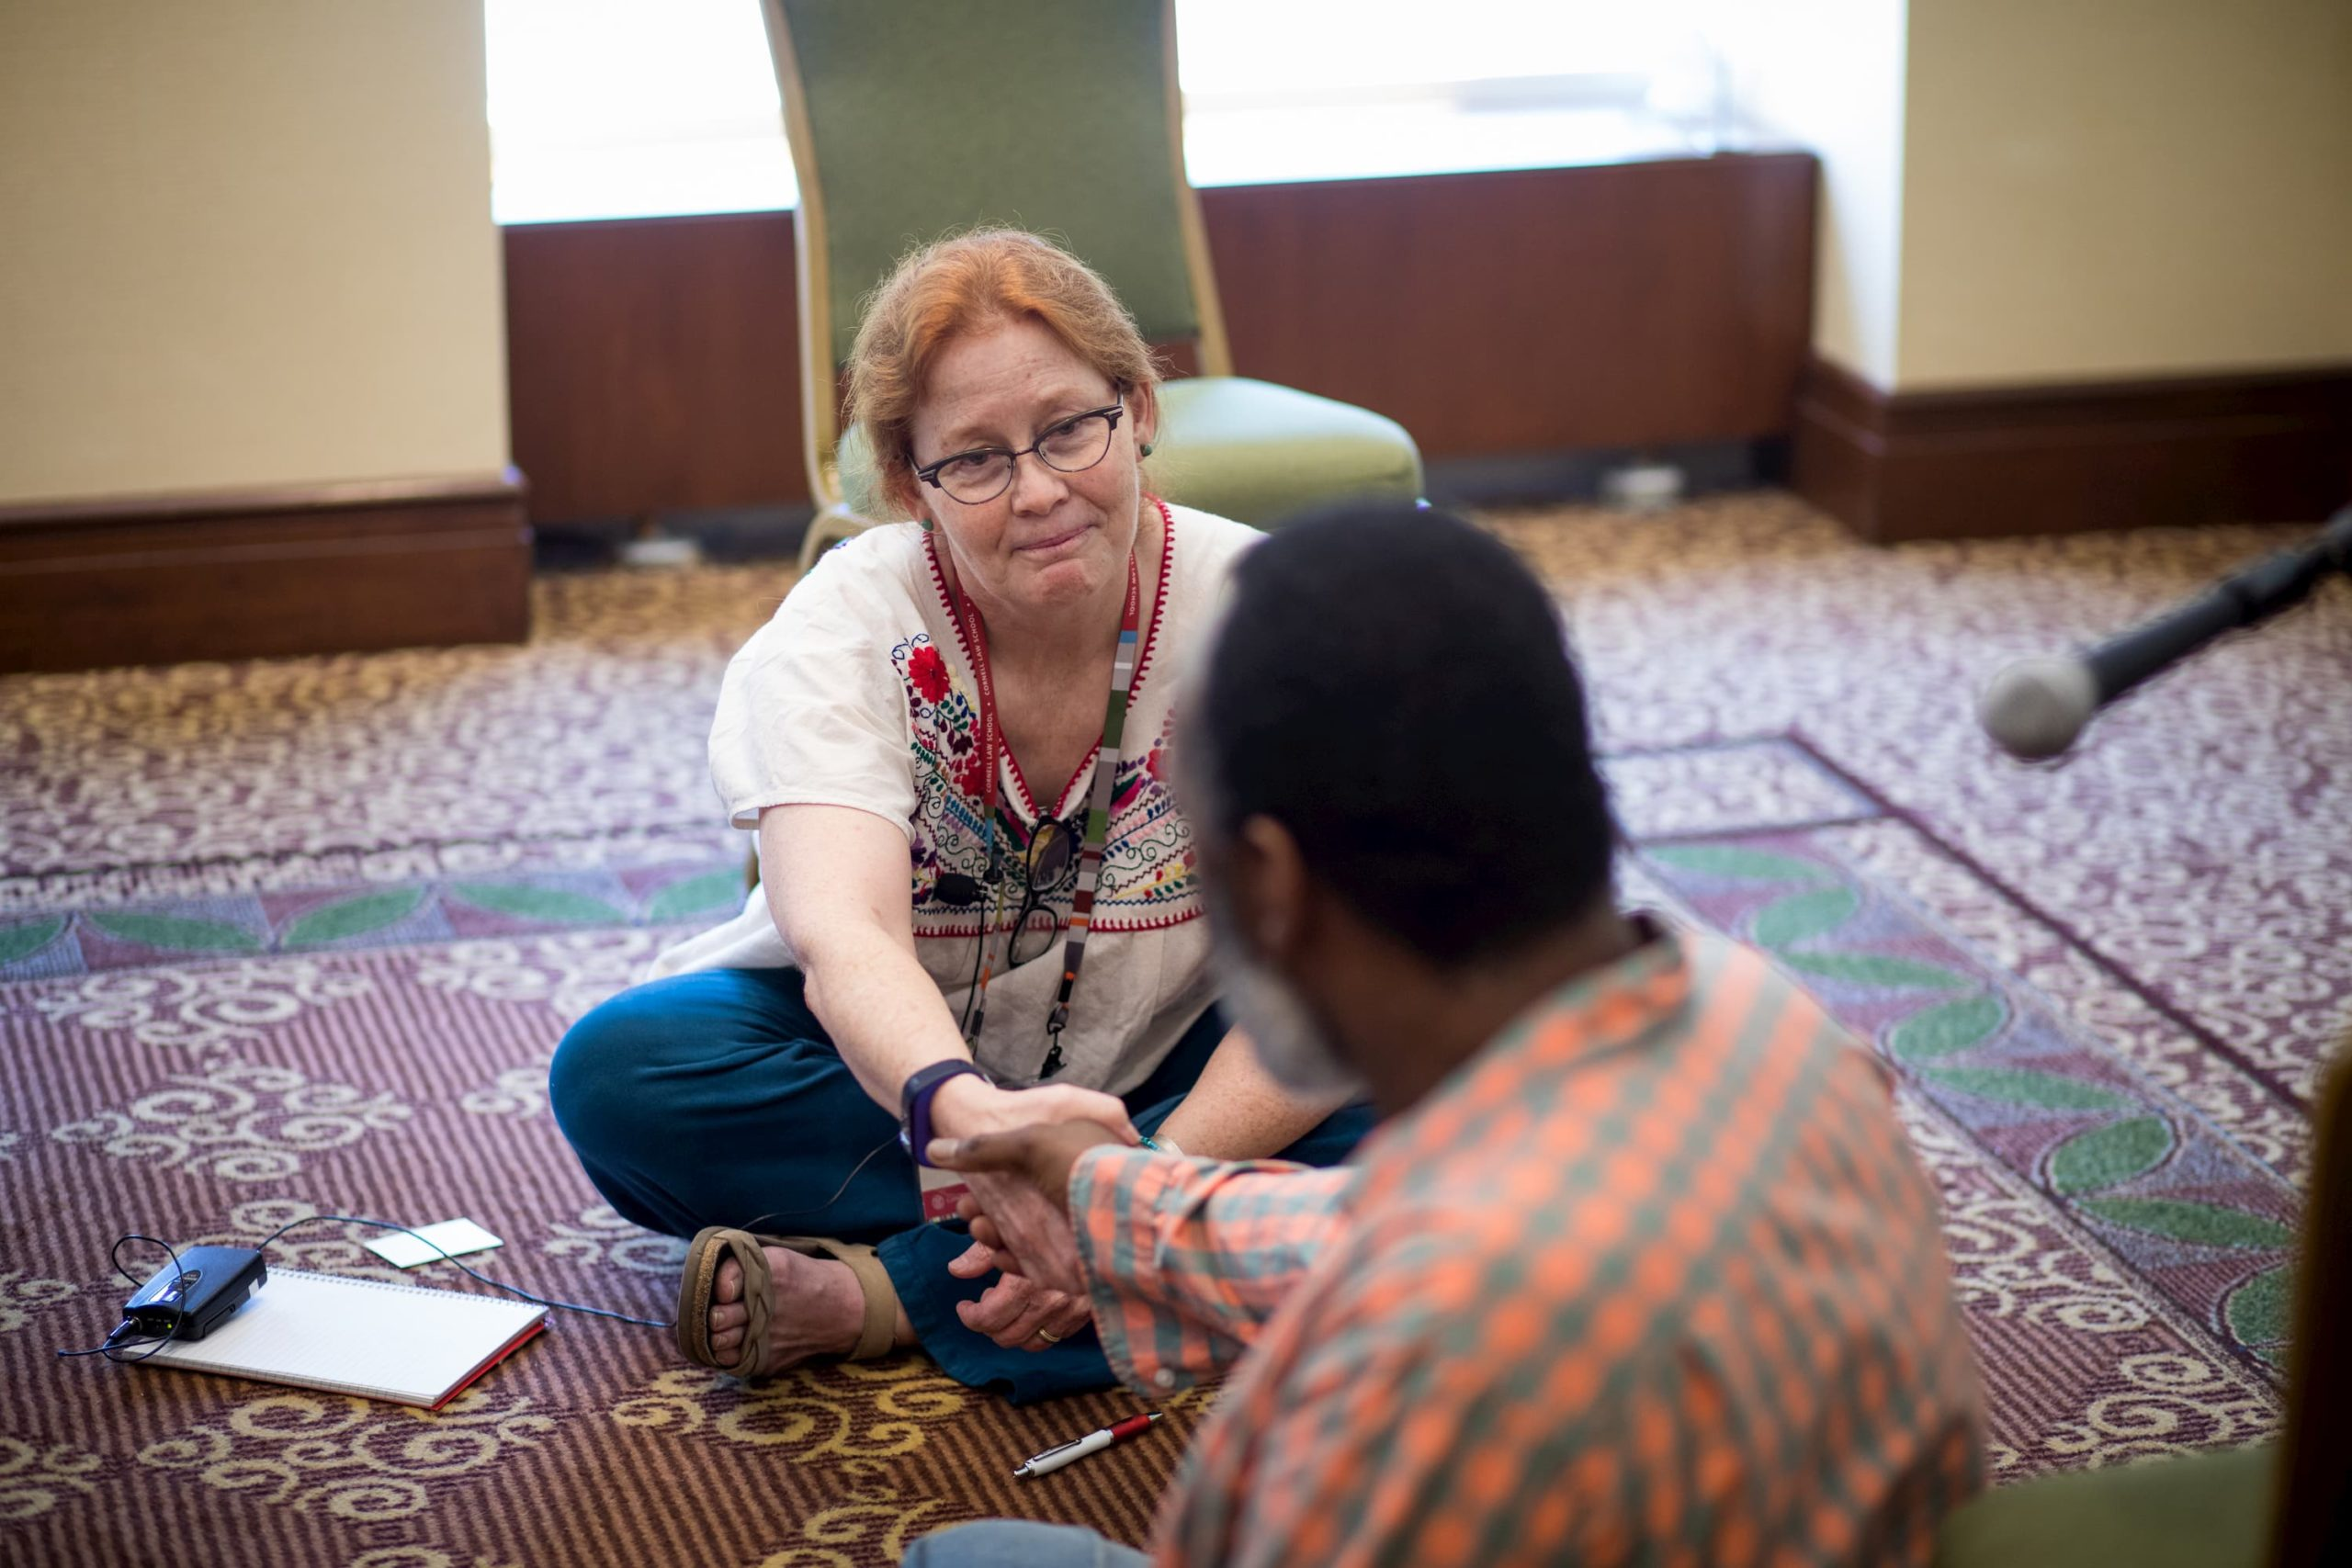 A woman with glasses and in a white shirt with embroidery is sitting on the ground, holding hands with a man in an orange plaid shirt.